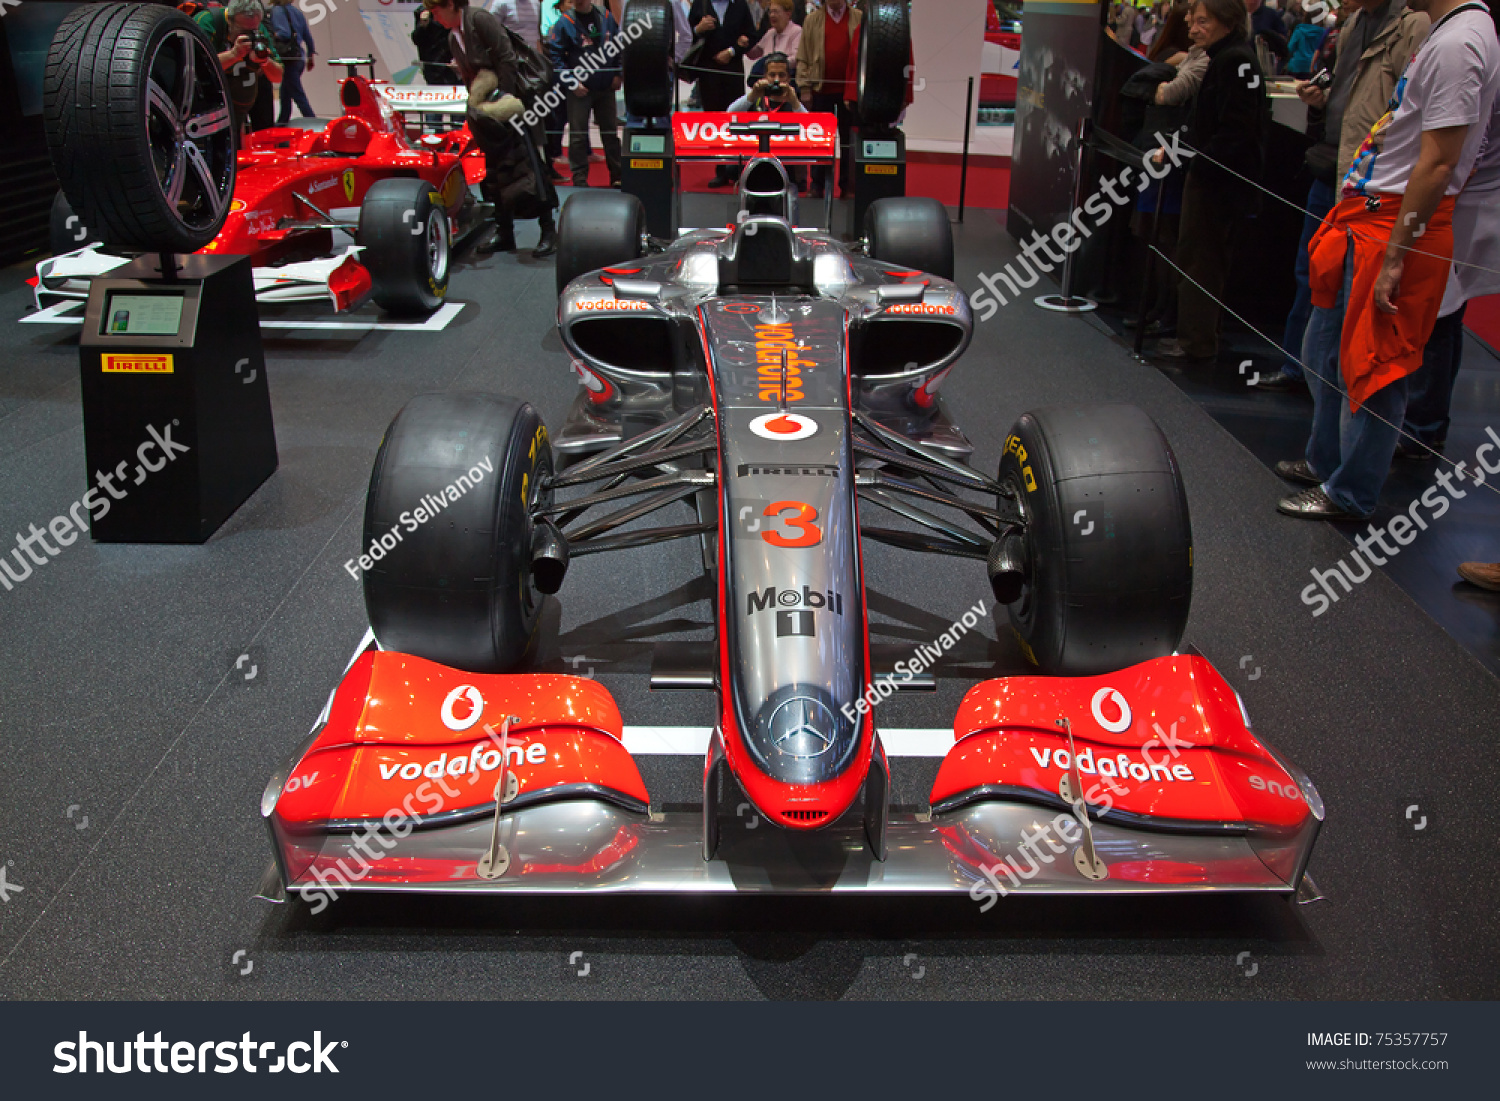 geneva march 8 the mclaren mercedes f1 racing car on display at the pirelli stand at 81st. Black Bedroom Furniture Sets. Home Design Ideas